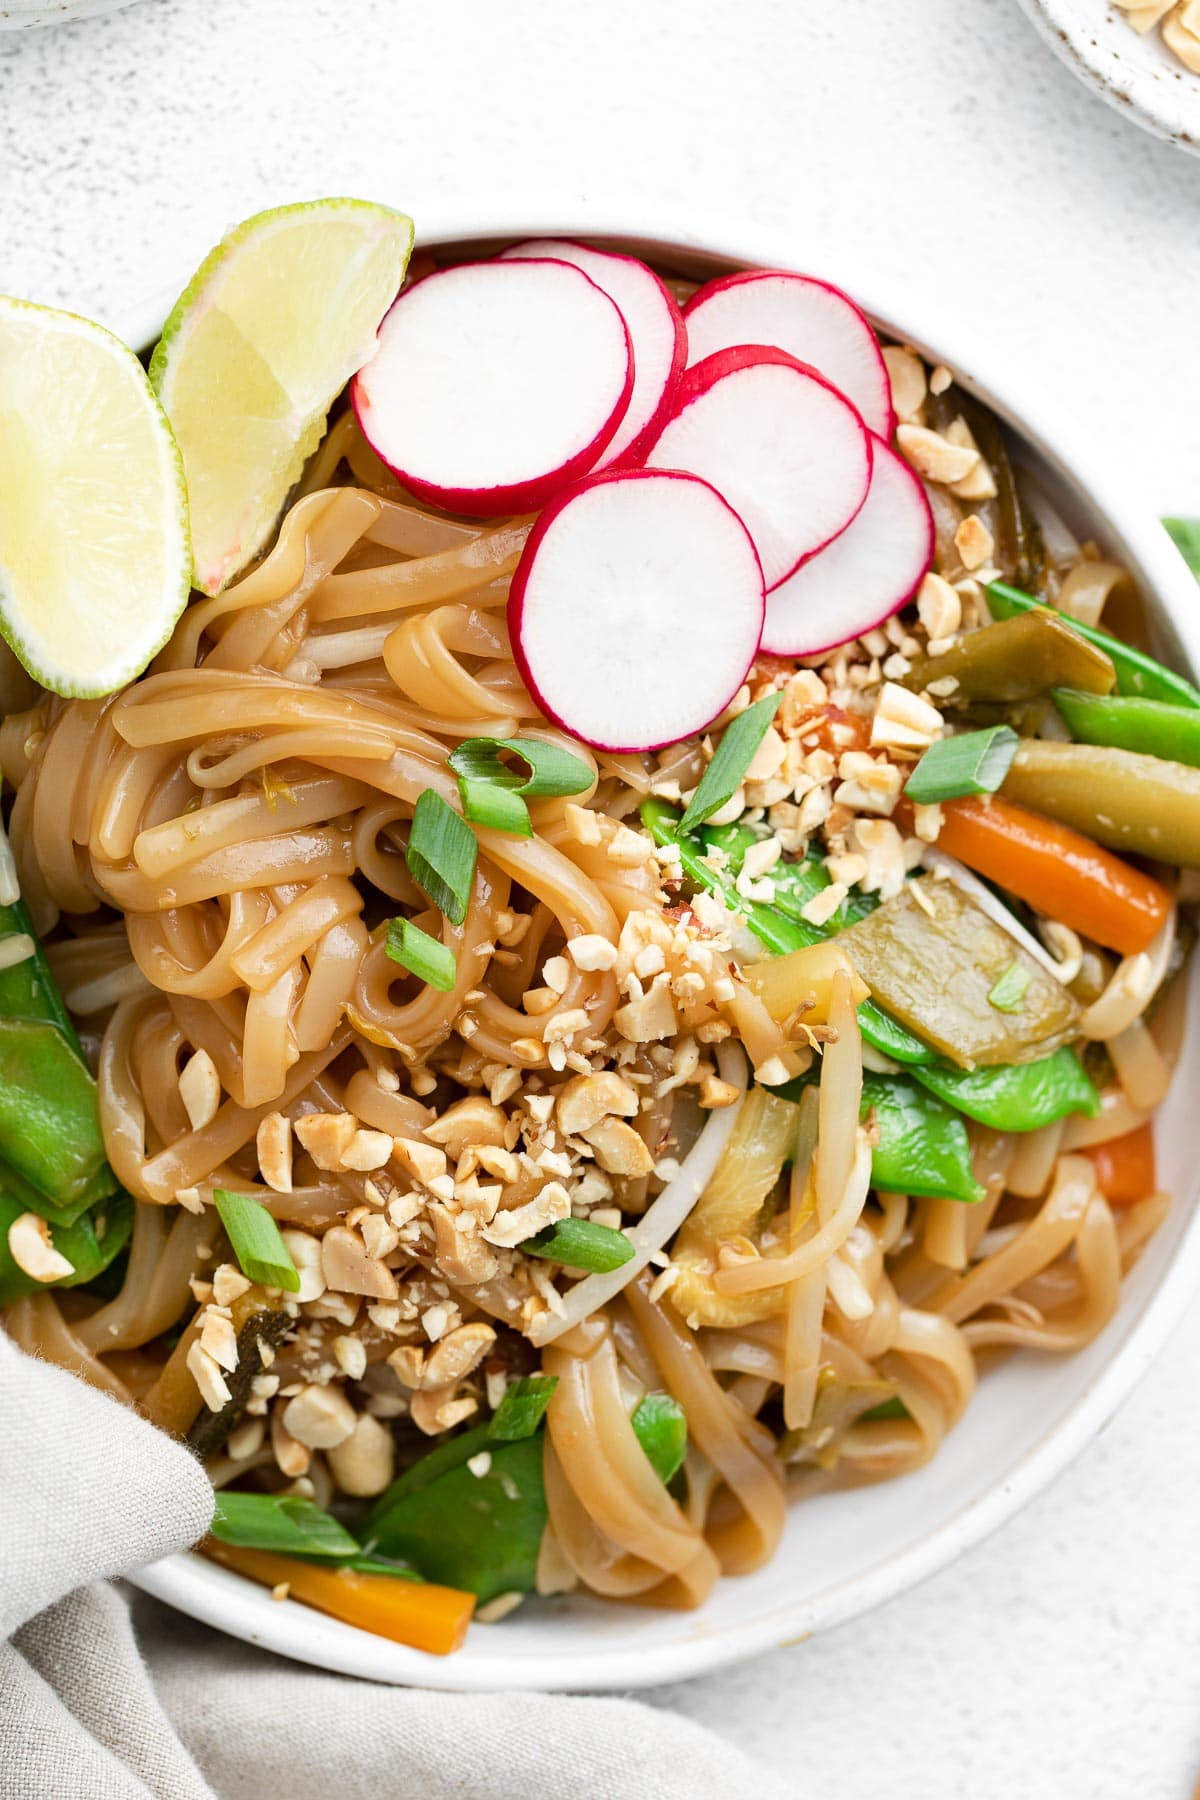 a large white bowl of rice noodles, fresh radishes, scallions, and crushed peanuts